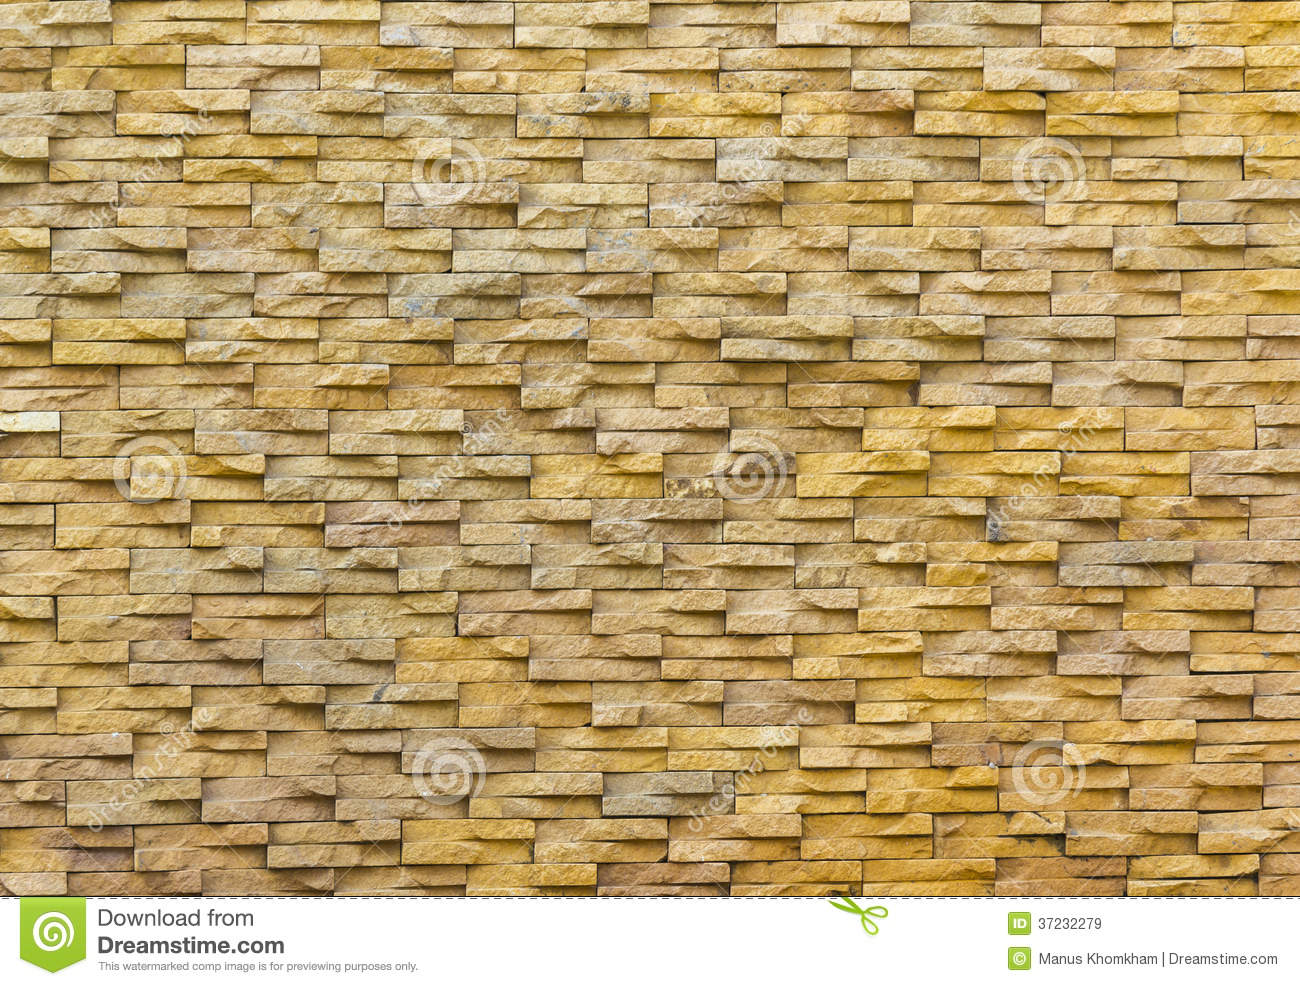 Sand stone brick wall stock image. Image of material - 37232279